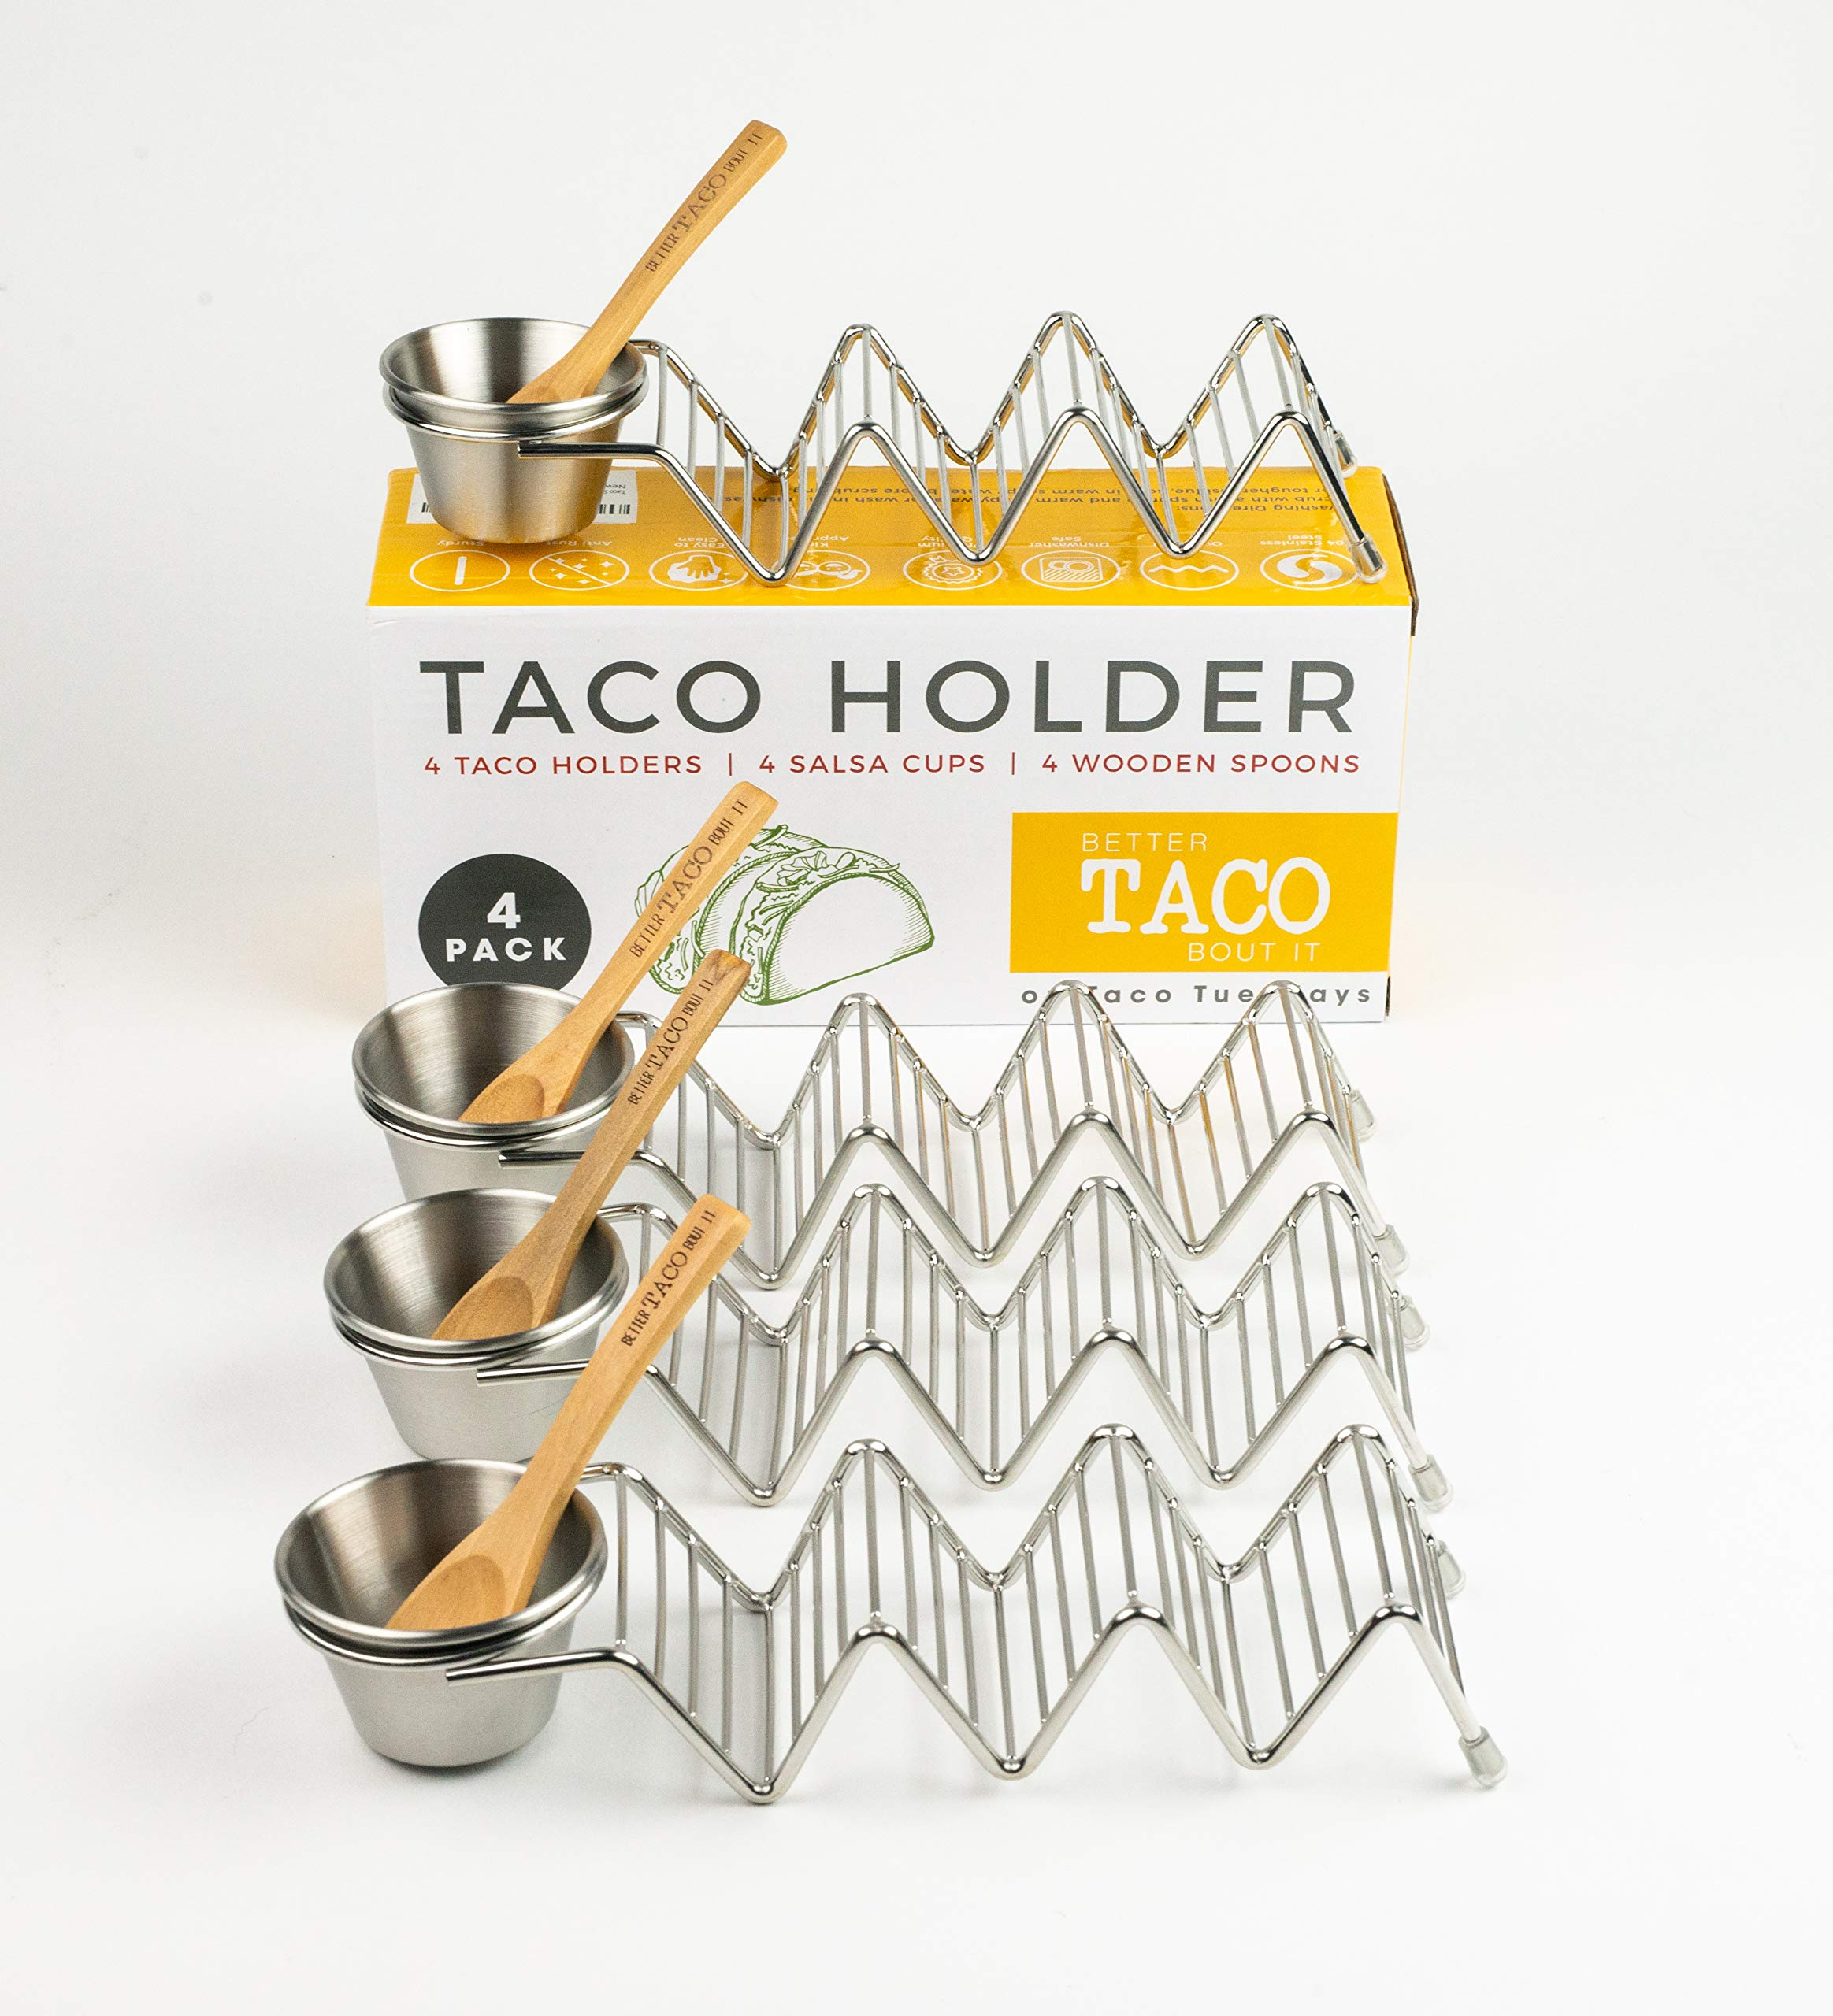 Taco Shell Stand Up Holders - 4 Pack Premium Stainless Steel Oven & Dishwasher Safe Taco Holder, Holds 3 Tacos Each Keeping Shells Neat & Upright, Also Comes With 4 Salsa Cups & 4 Wooden Spoons